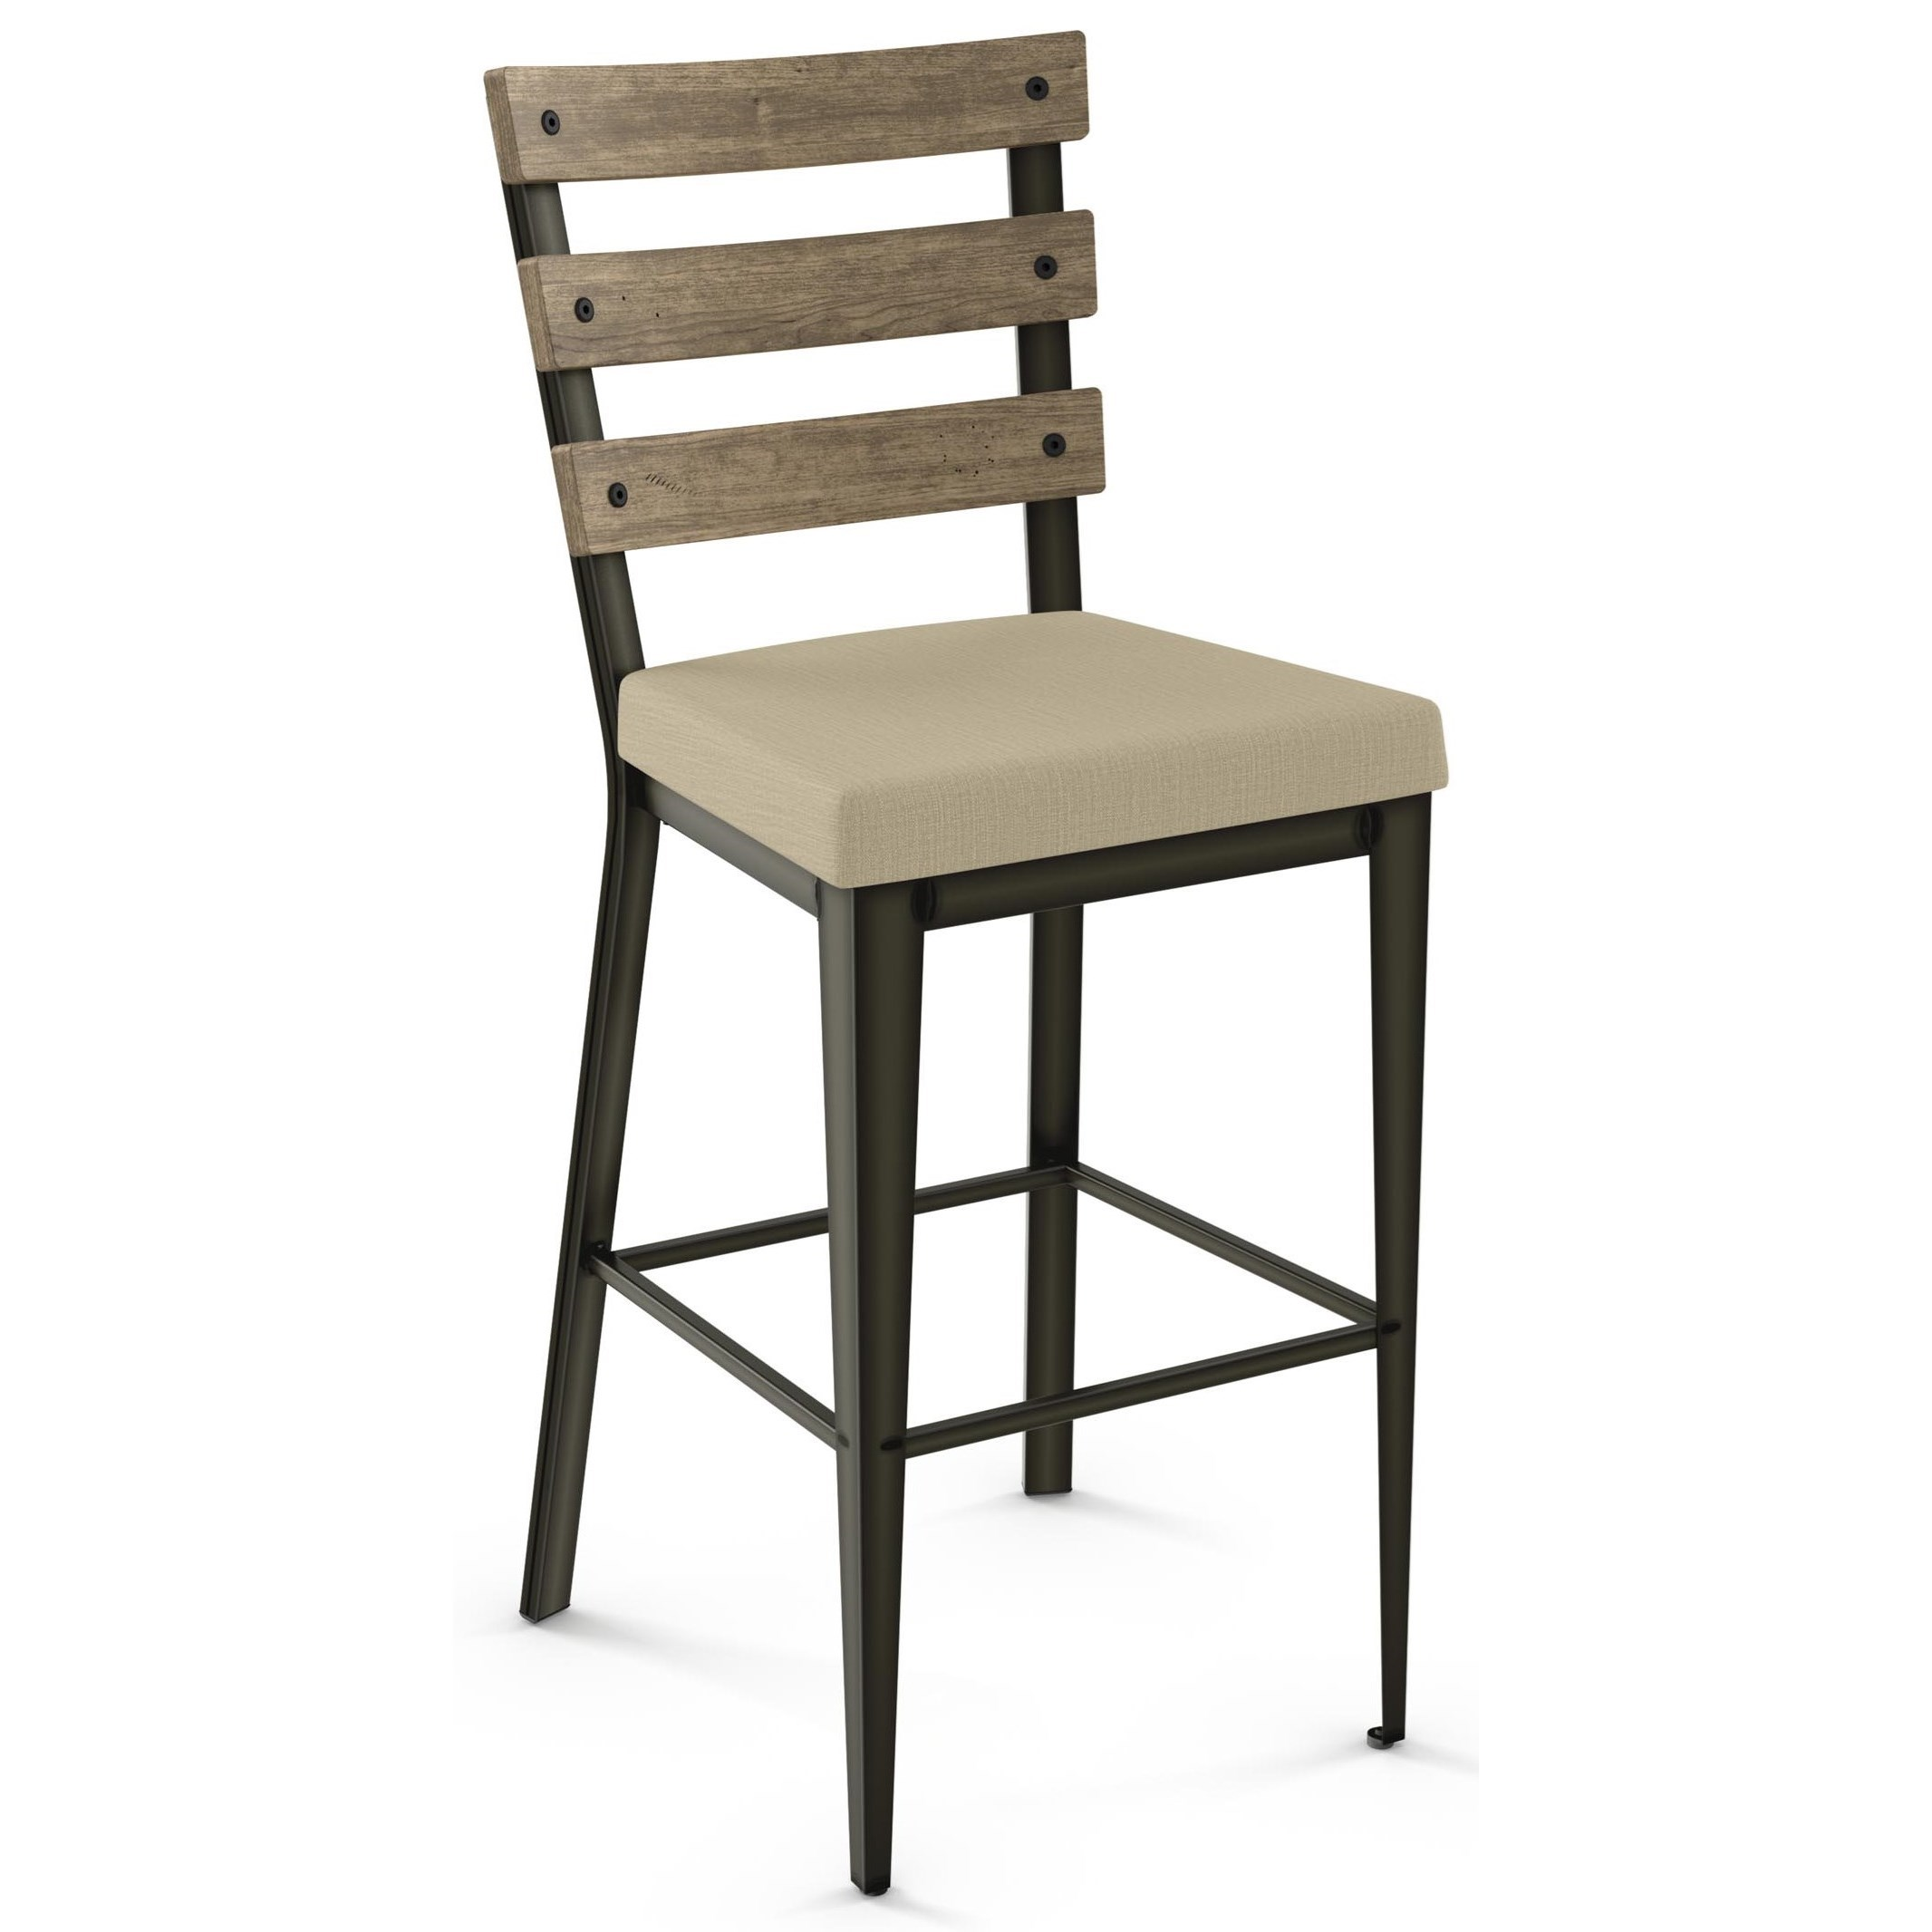 """Industrial 26"""" Dexter Counter Stool w/ Upholstered Seat by Amisco at Dinette Depot"""